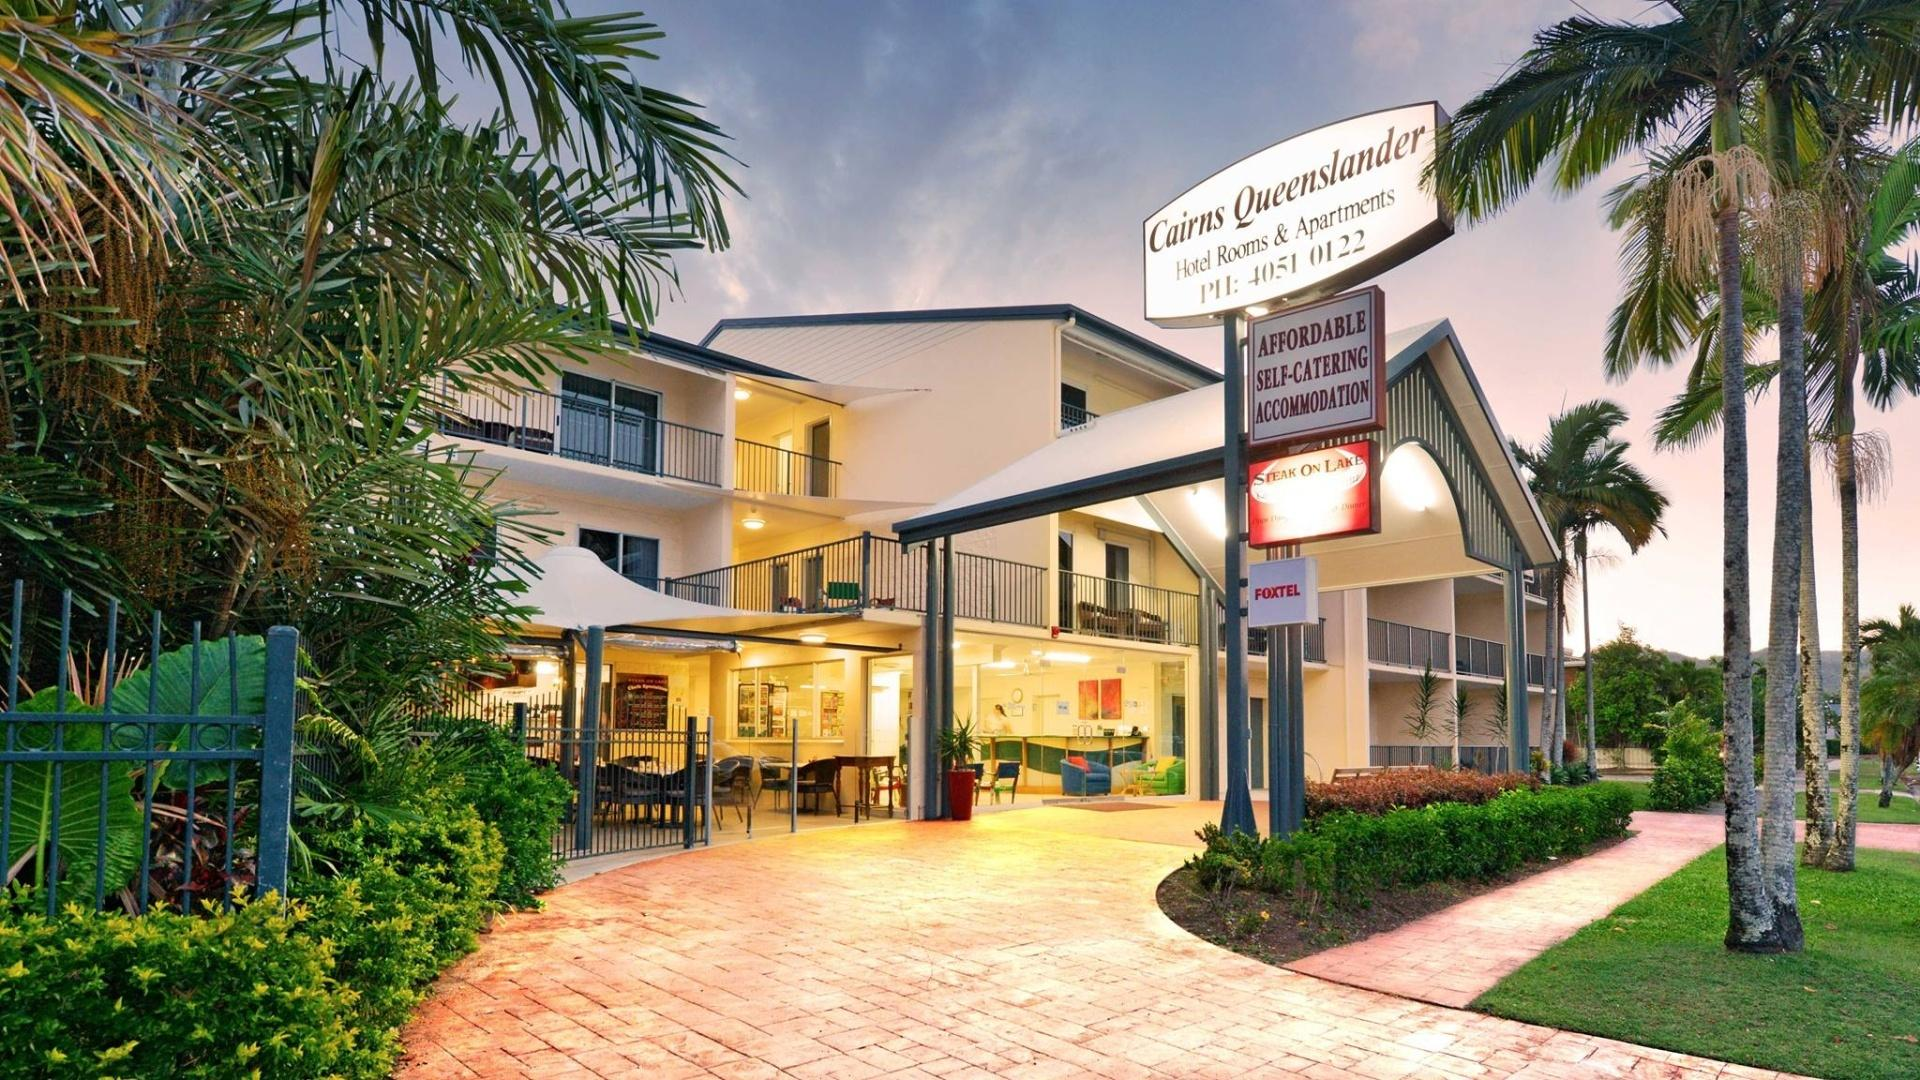 More About Cairns Queenslander Hotel U0026 Apartments